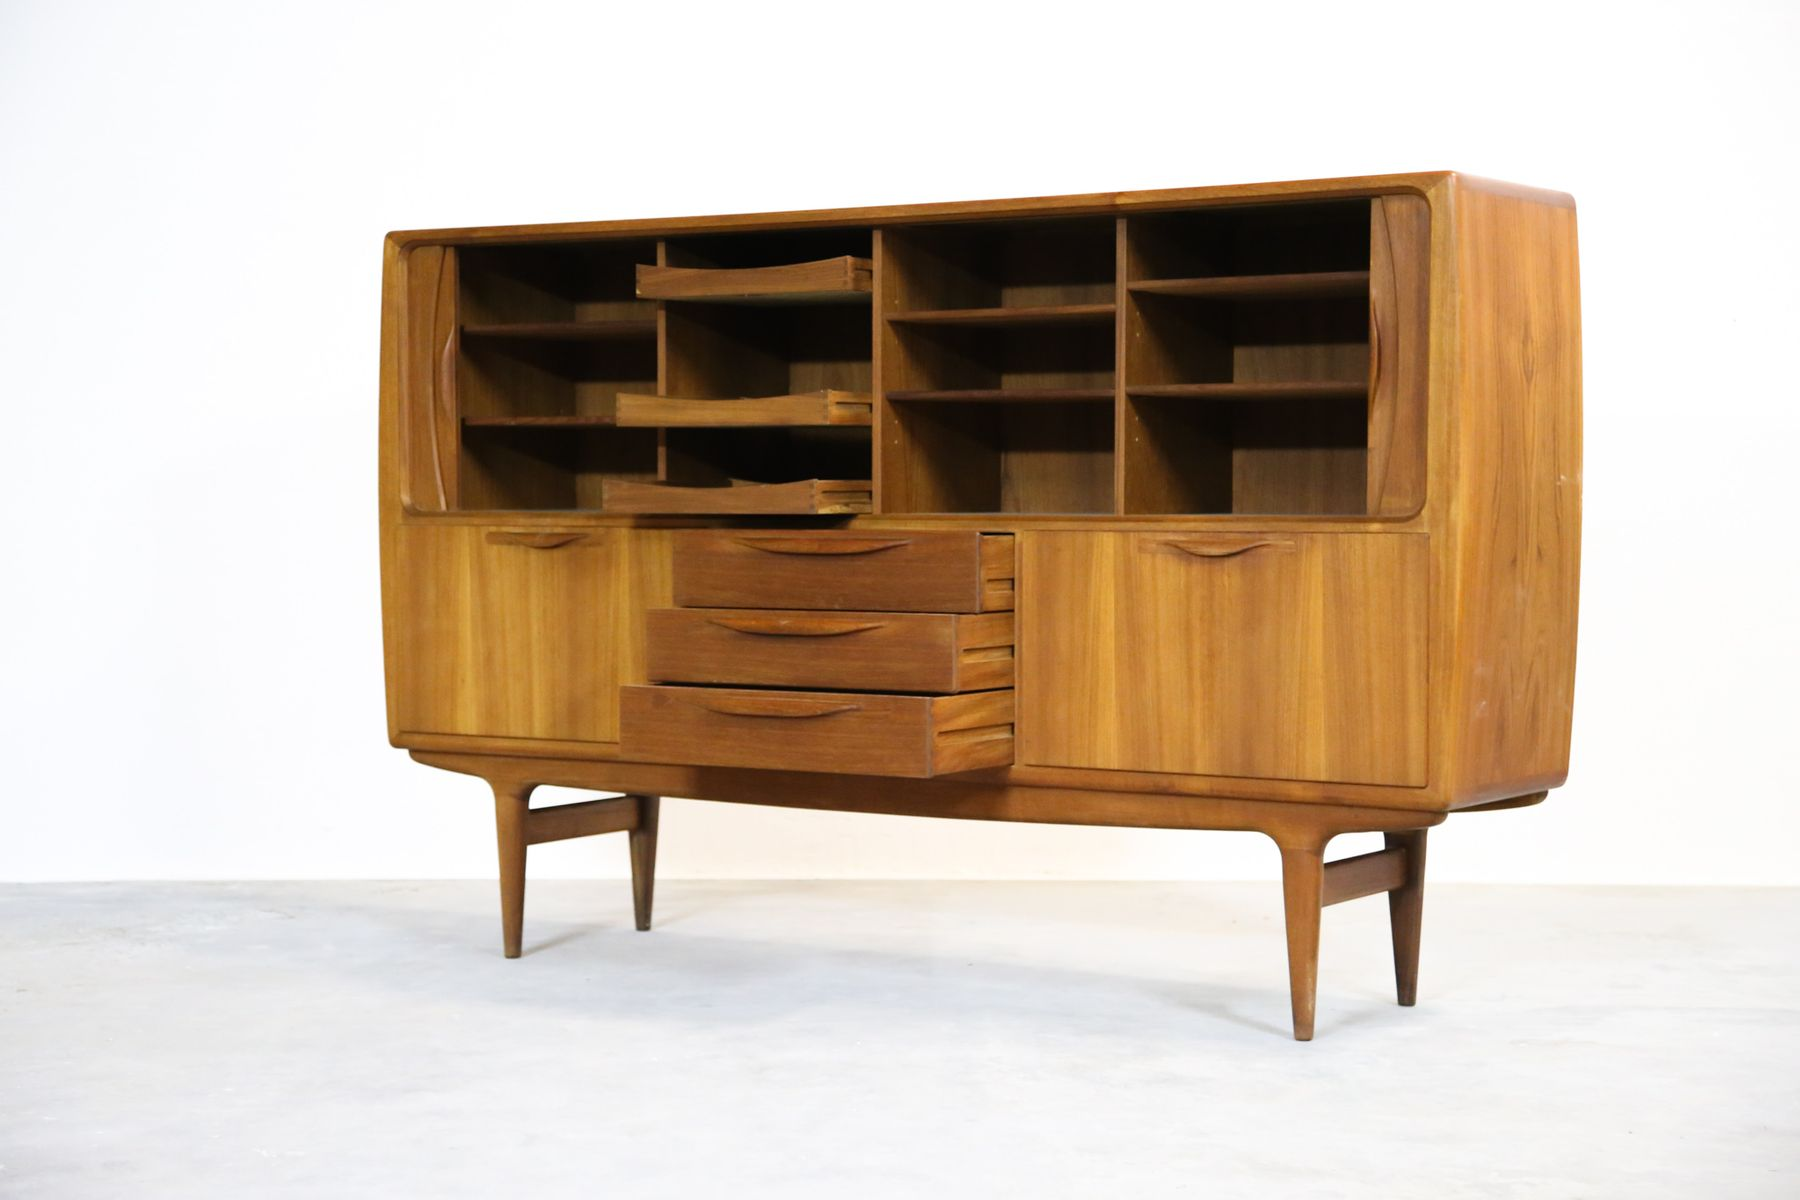 d nisches sideboard von johannes andersen f r samcon 1960er bei pamono kaufen. Black Bedroom Furniture Sets. Home Design Ideas